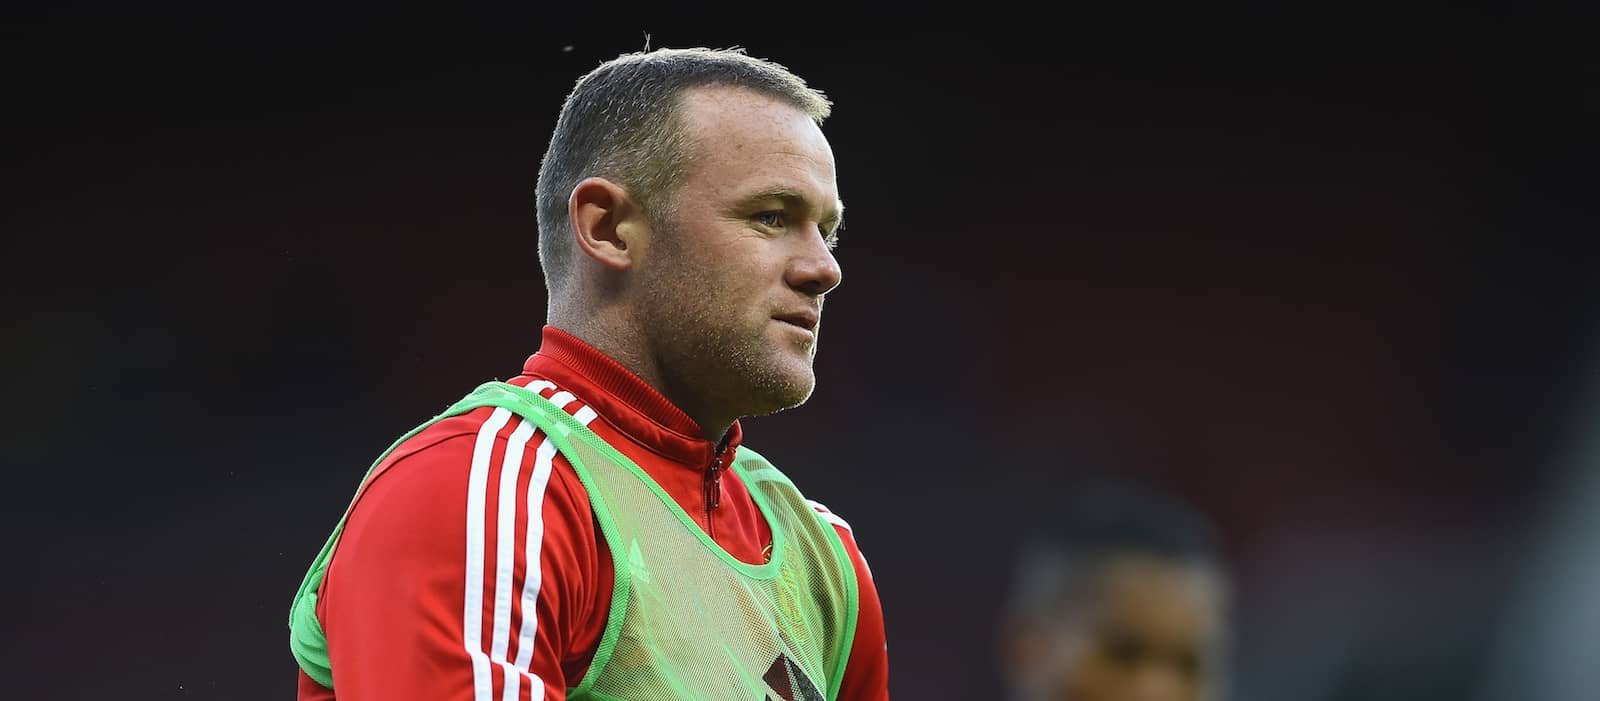 Manchester United fans satisfied with Wayne Rooney's performance against Crystal Palace